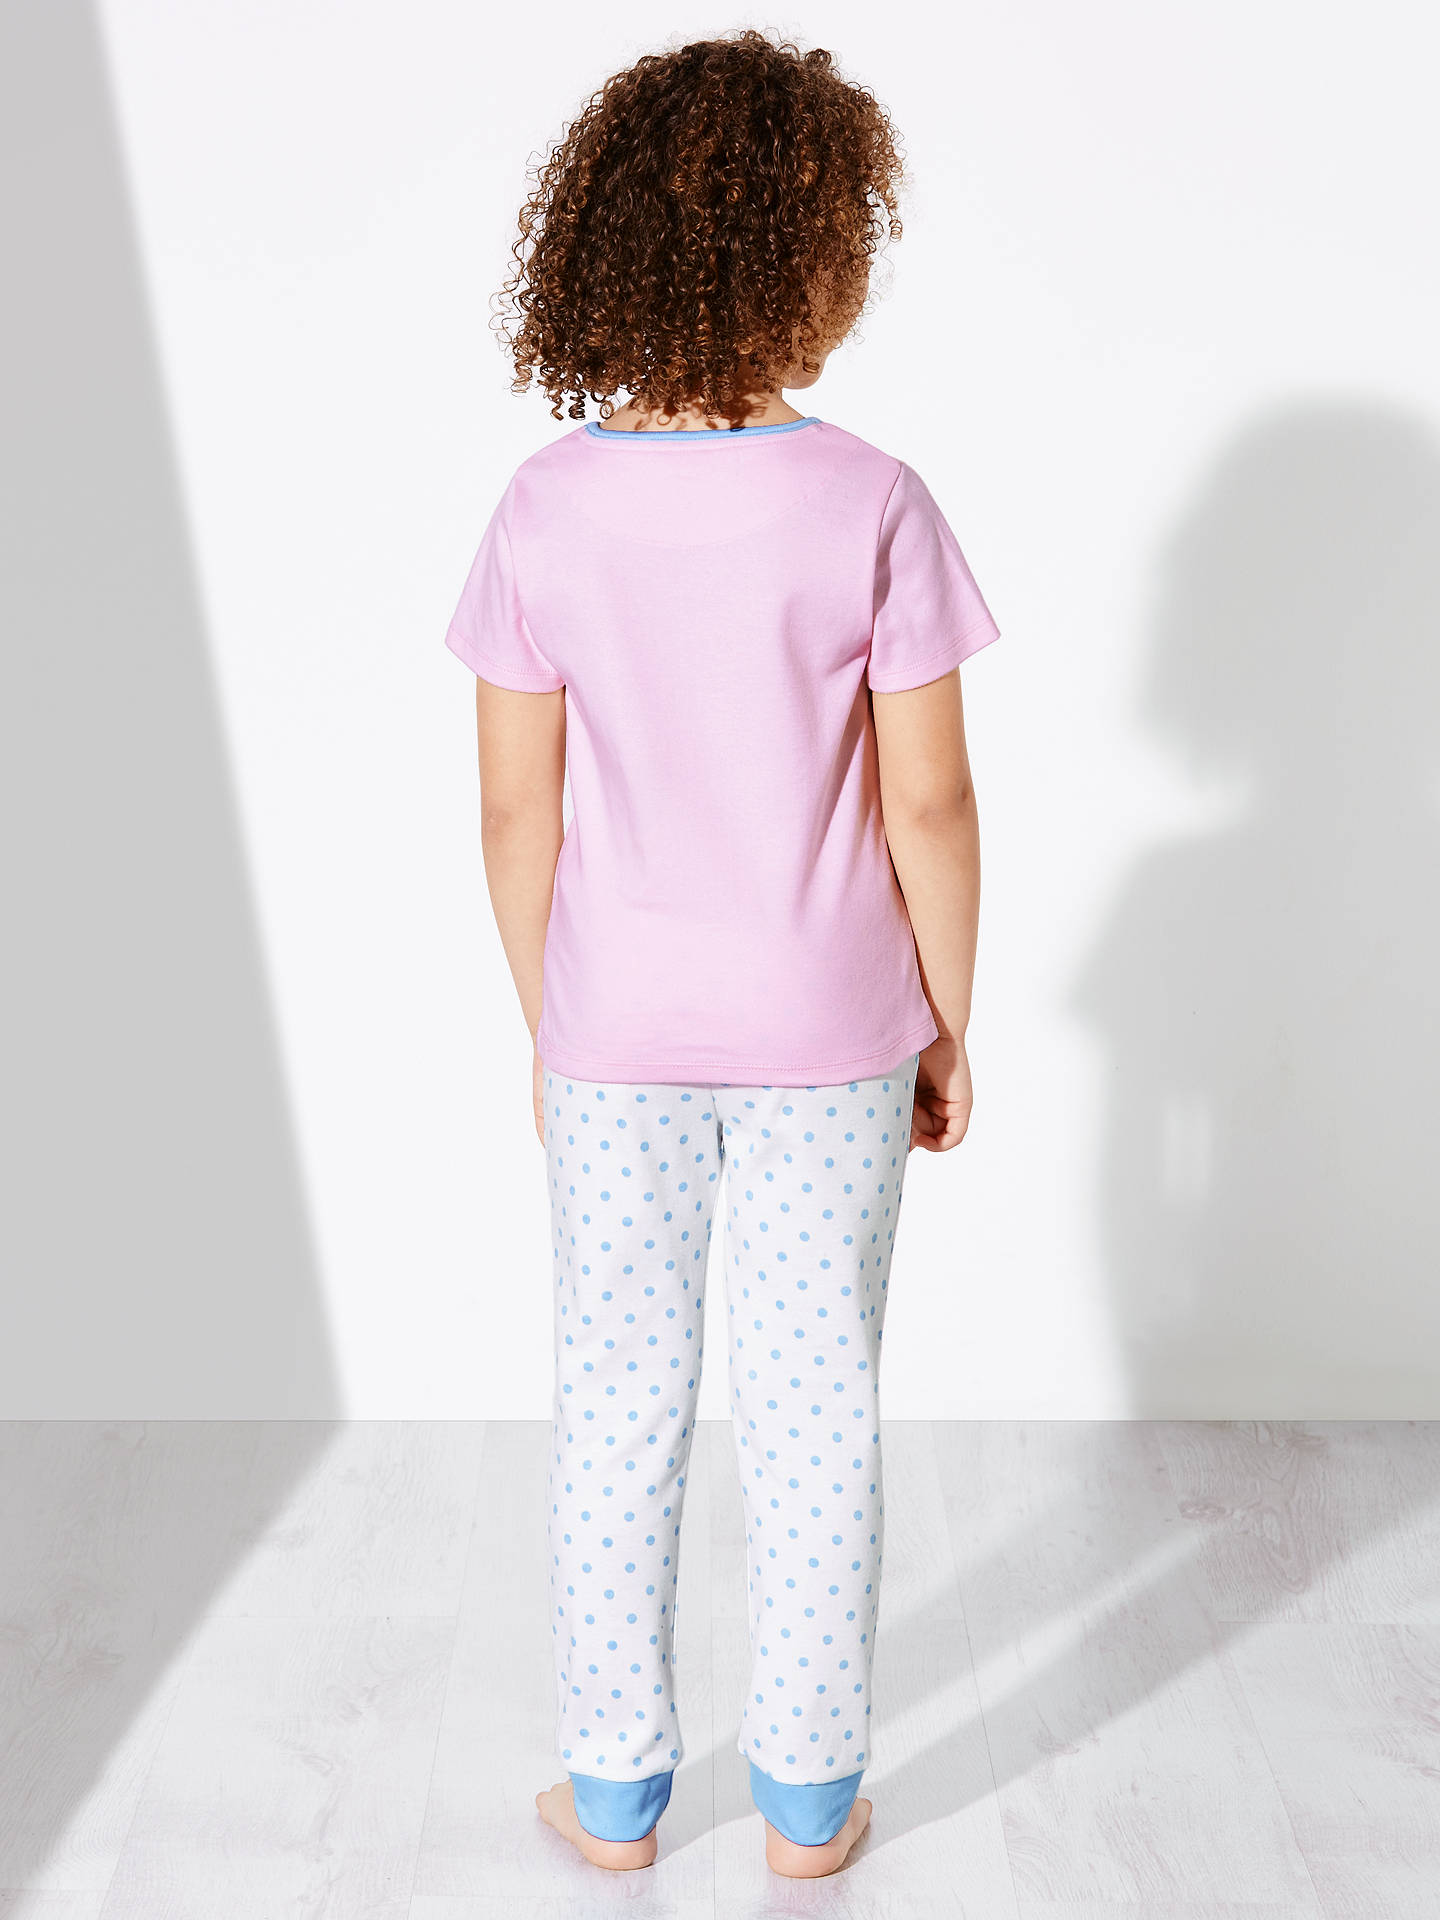 BuyJohn Lewis Children's Spring Bunny Pyjamas, Pink, 2 years Online at johnlewis.com